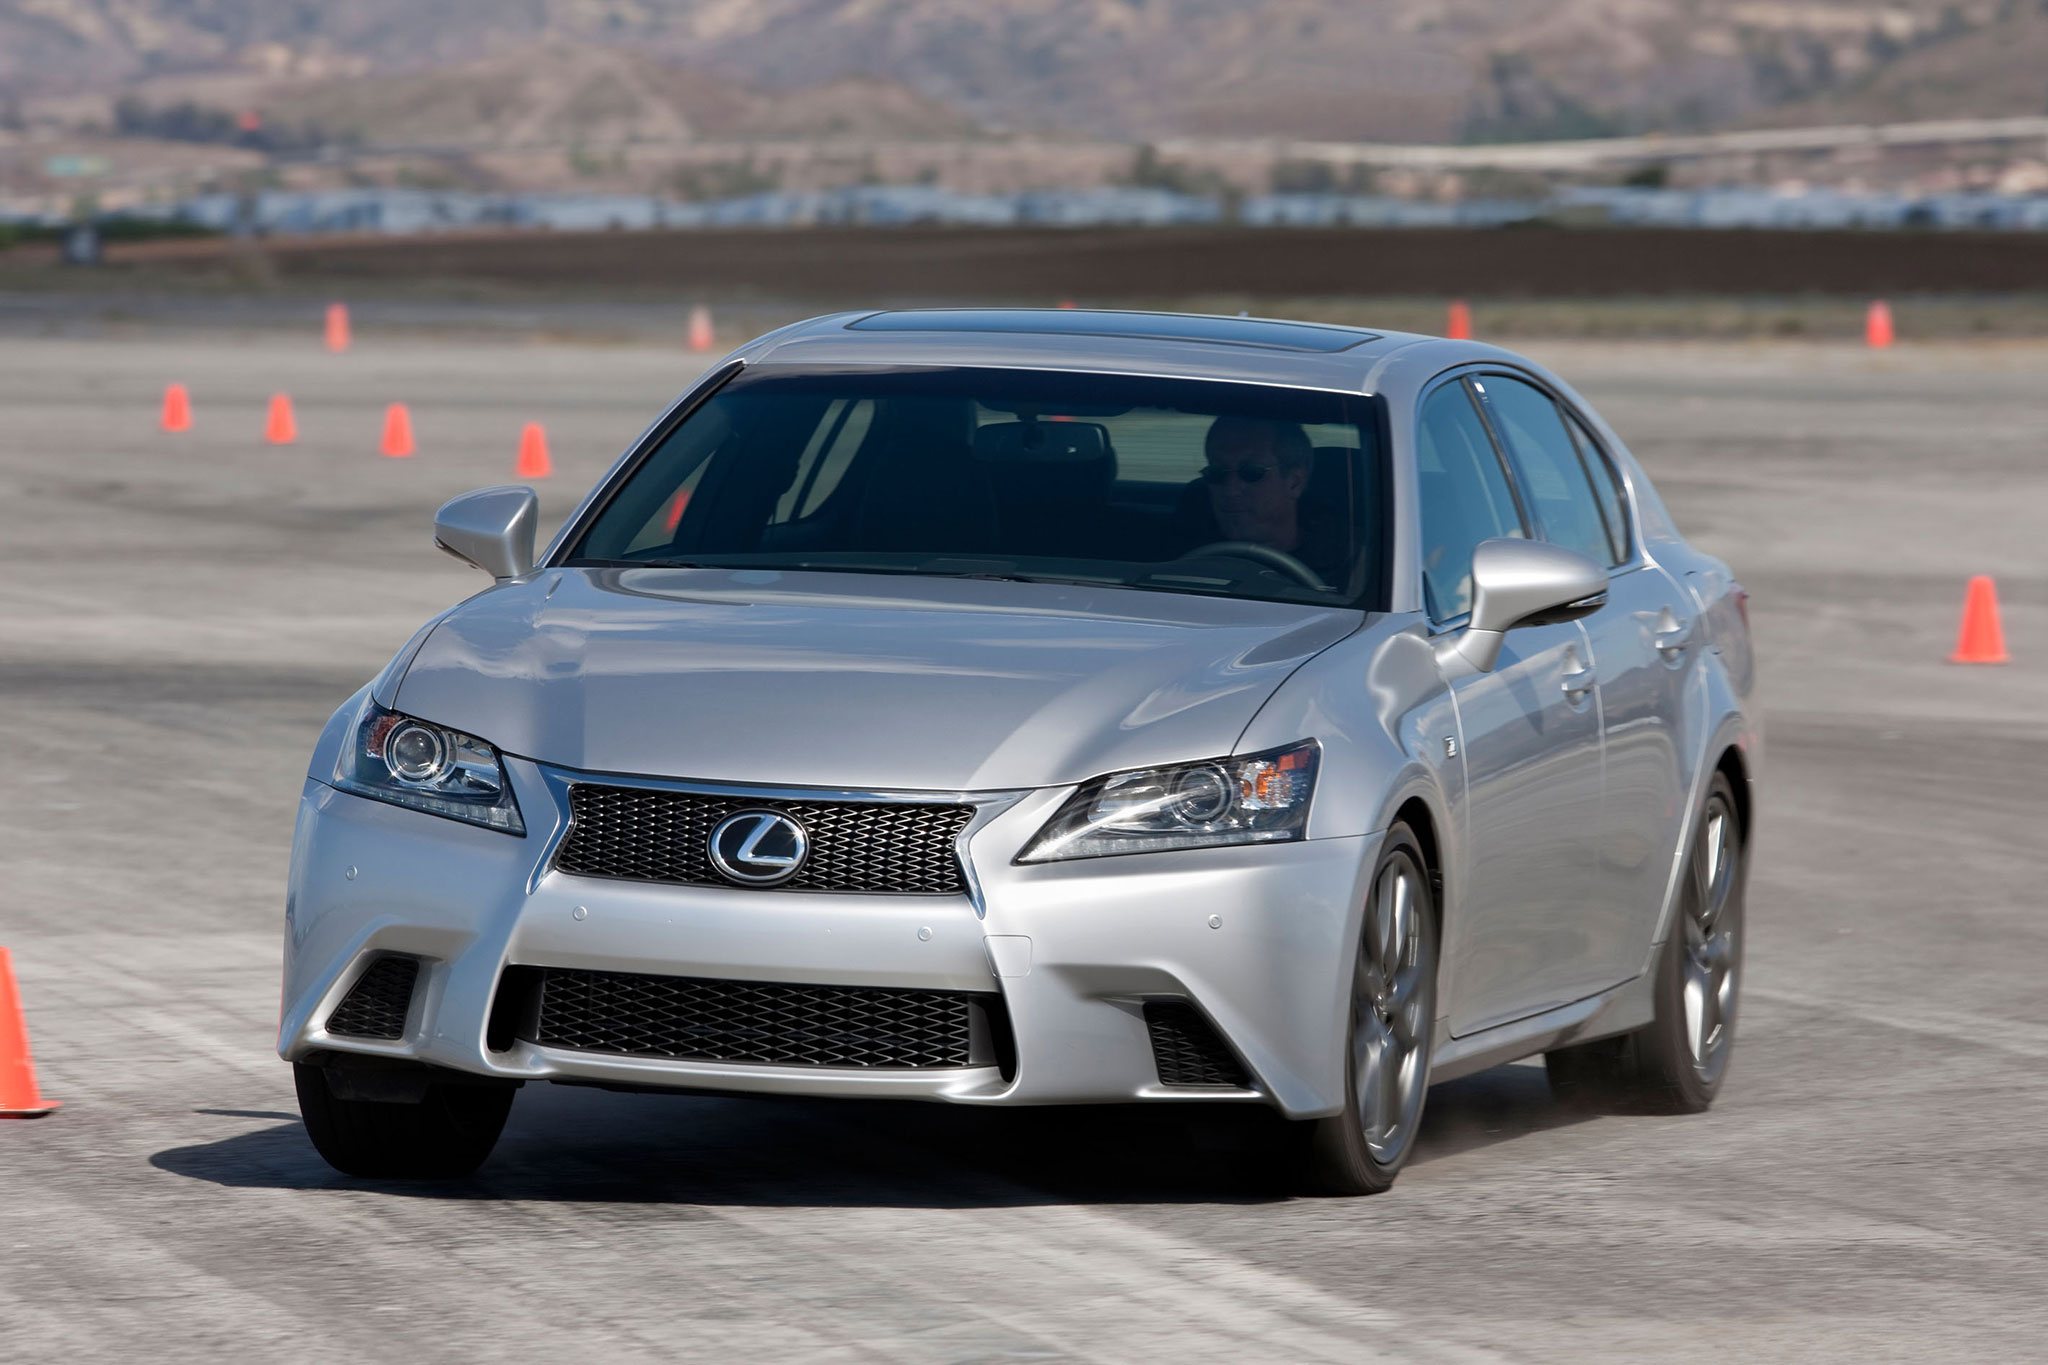 modded sport forums down on lls super present lexus rsr clublexus f gen gs